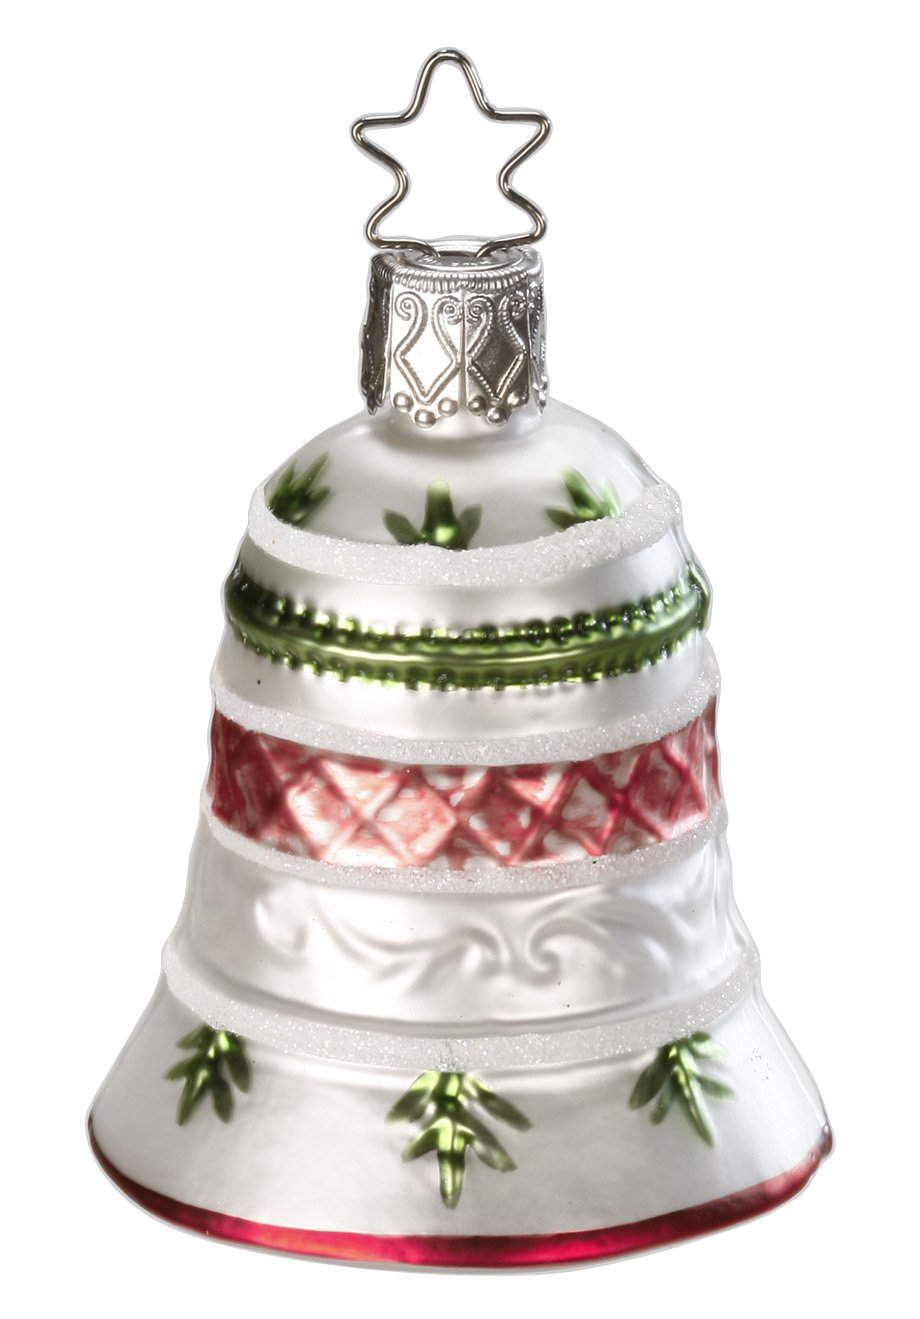 Inge Glas Antique Bell 1-110-14 German Blown Glass Christmas Ornament